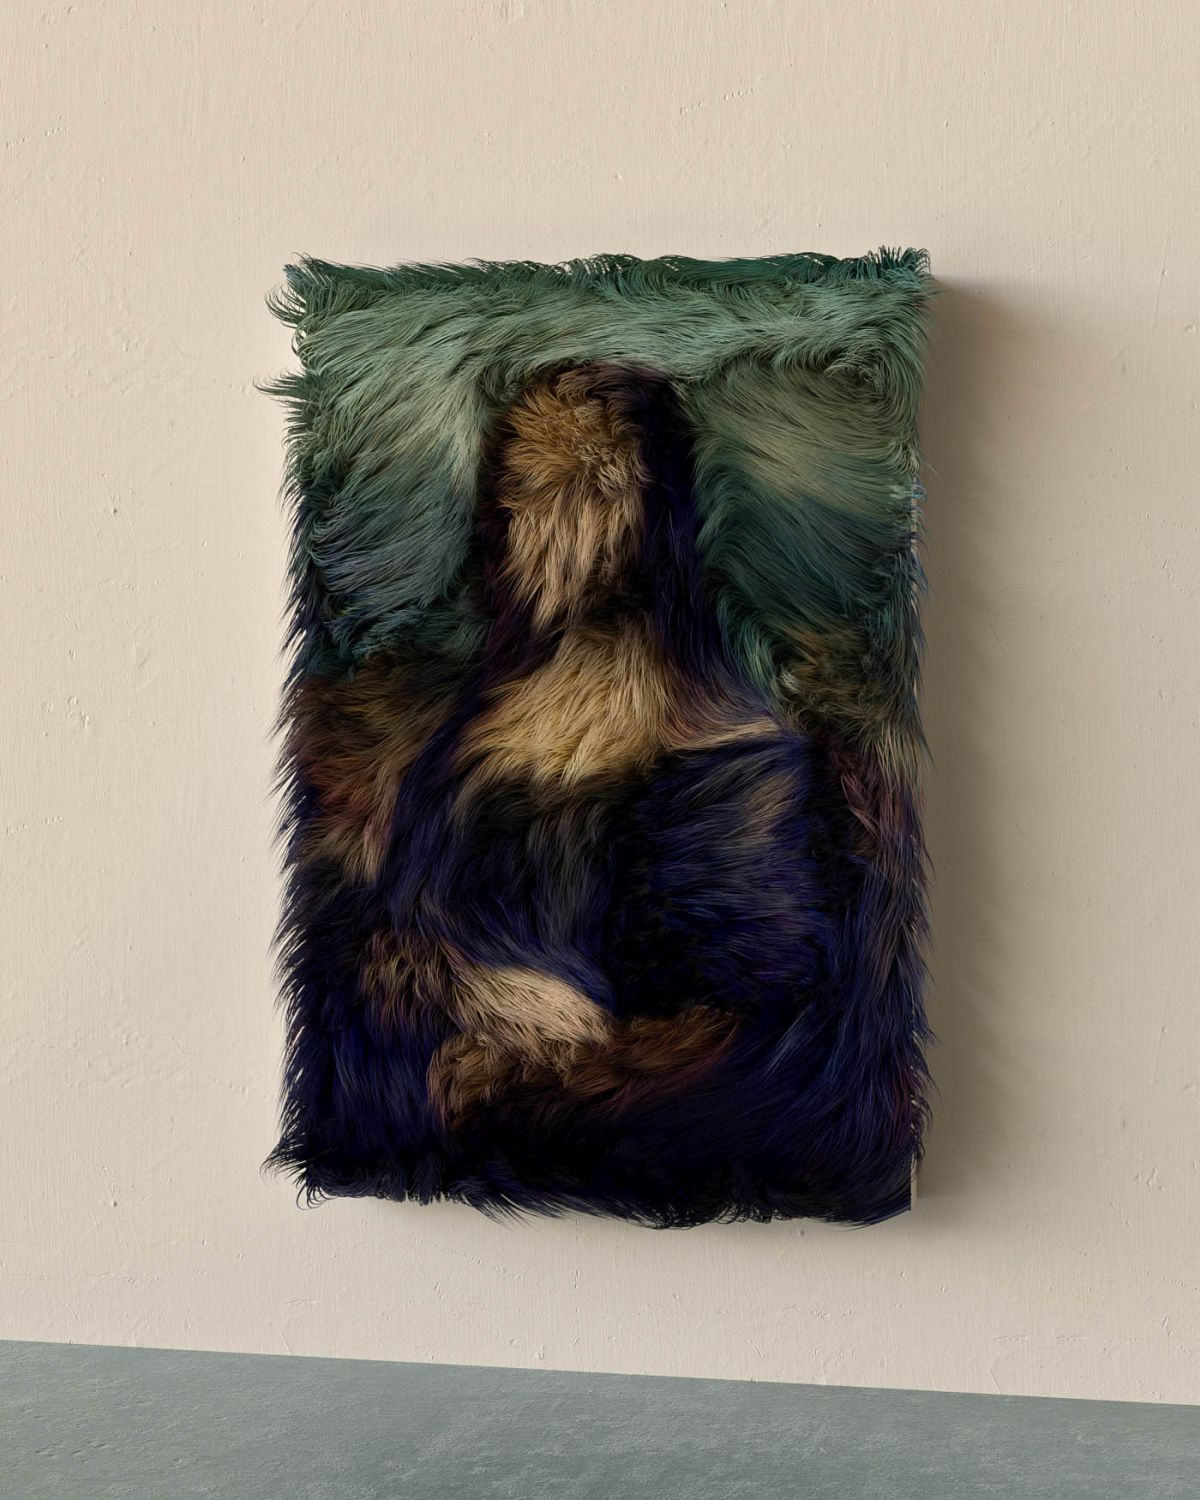 furry artwork mona lisa by murat yildirim